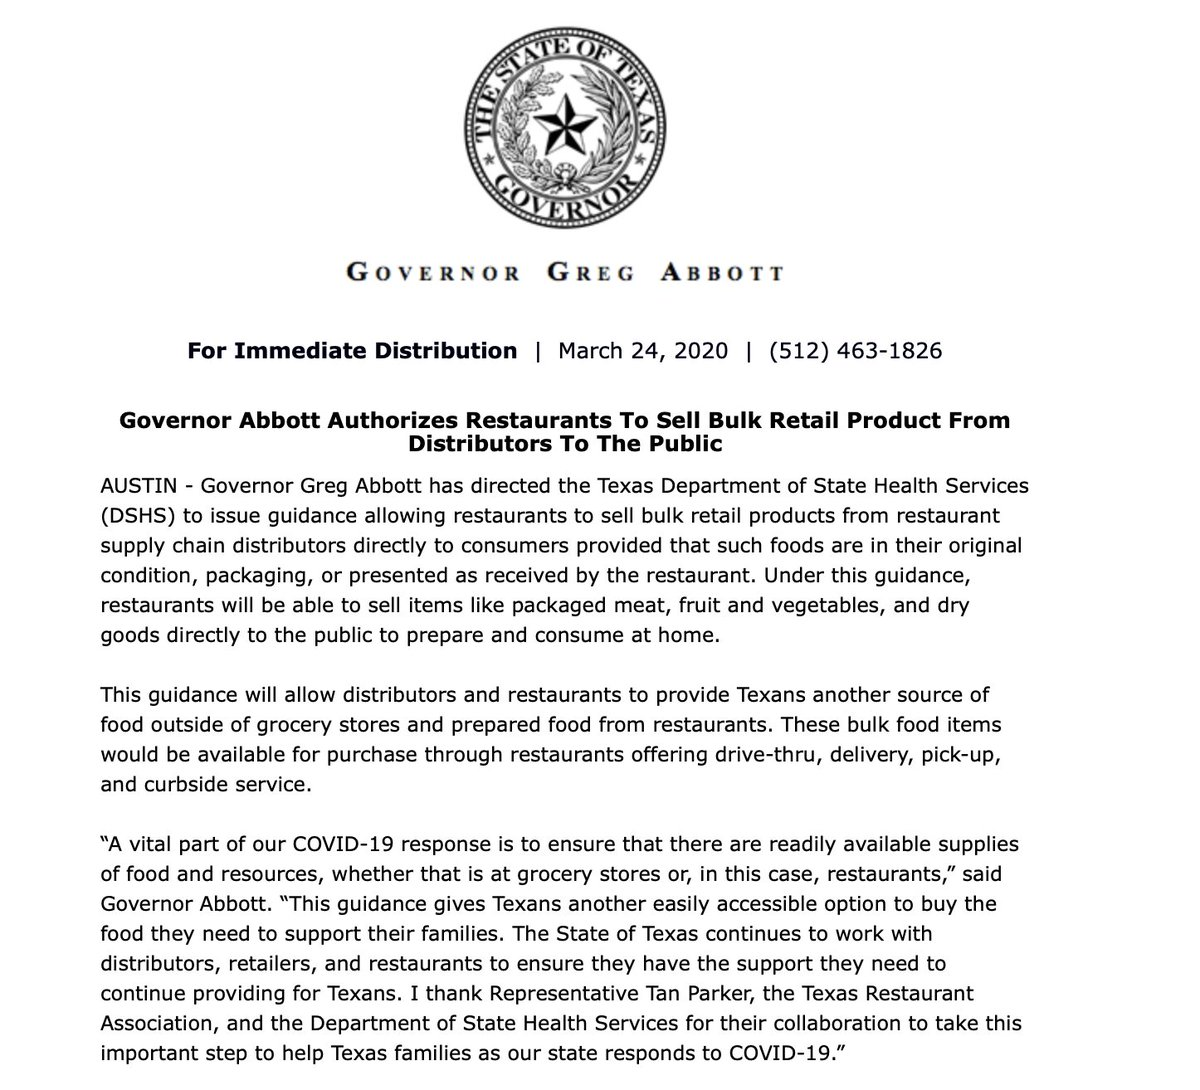 Good move here from @GovAbbott .